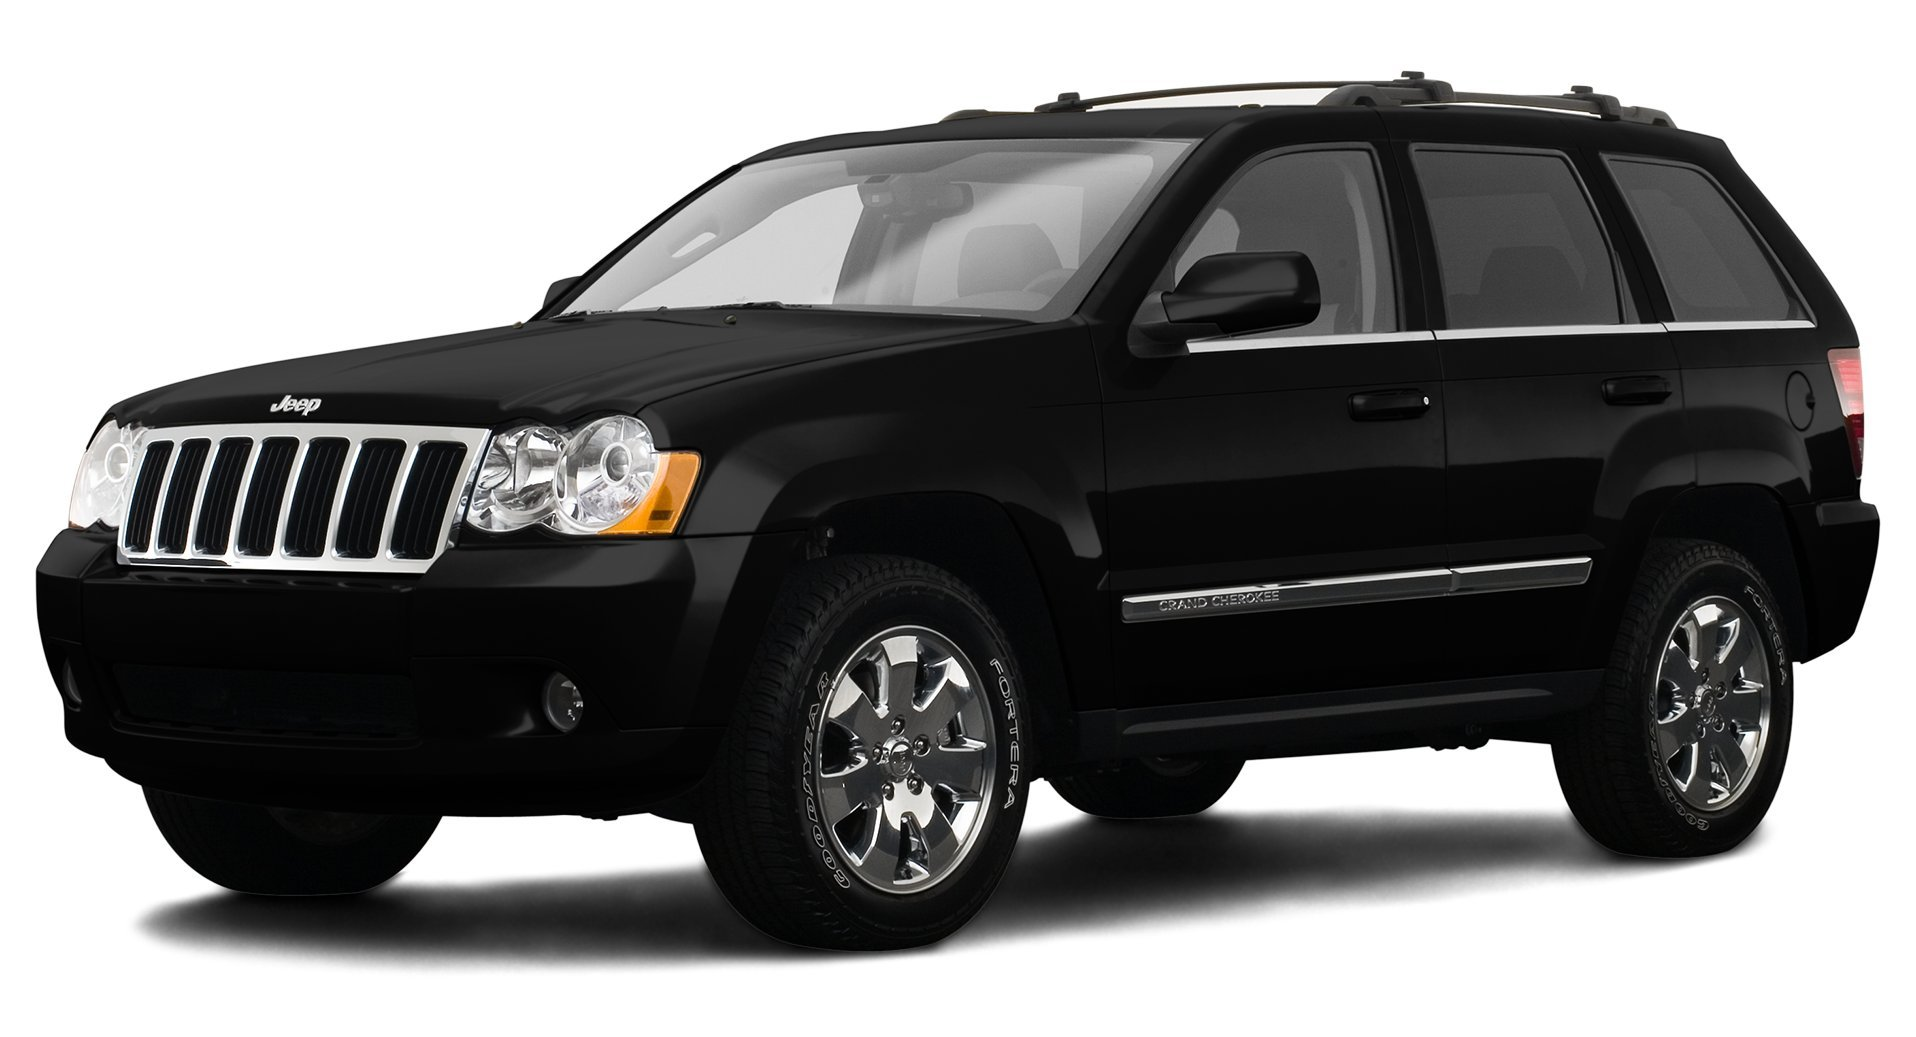 2008 toyota 4runner reviews images and specs vehicles. Black Bedroom Furniture Sets. Home Design Ideas